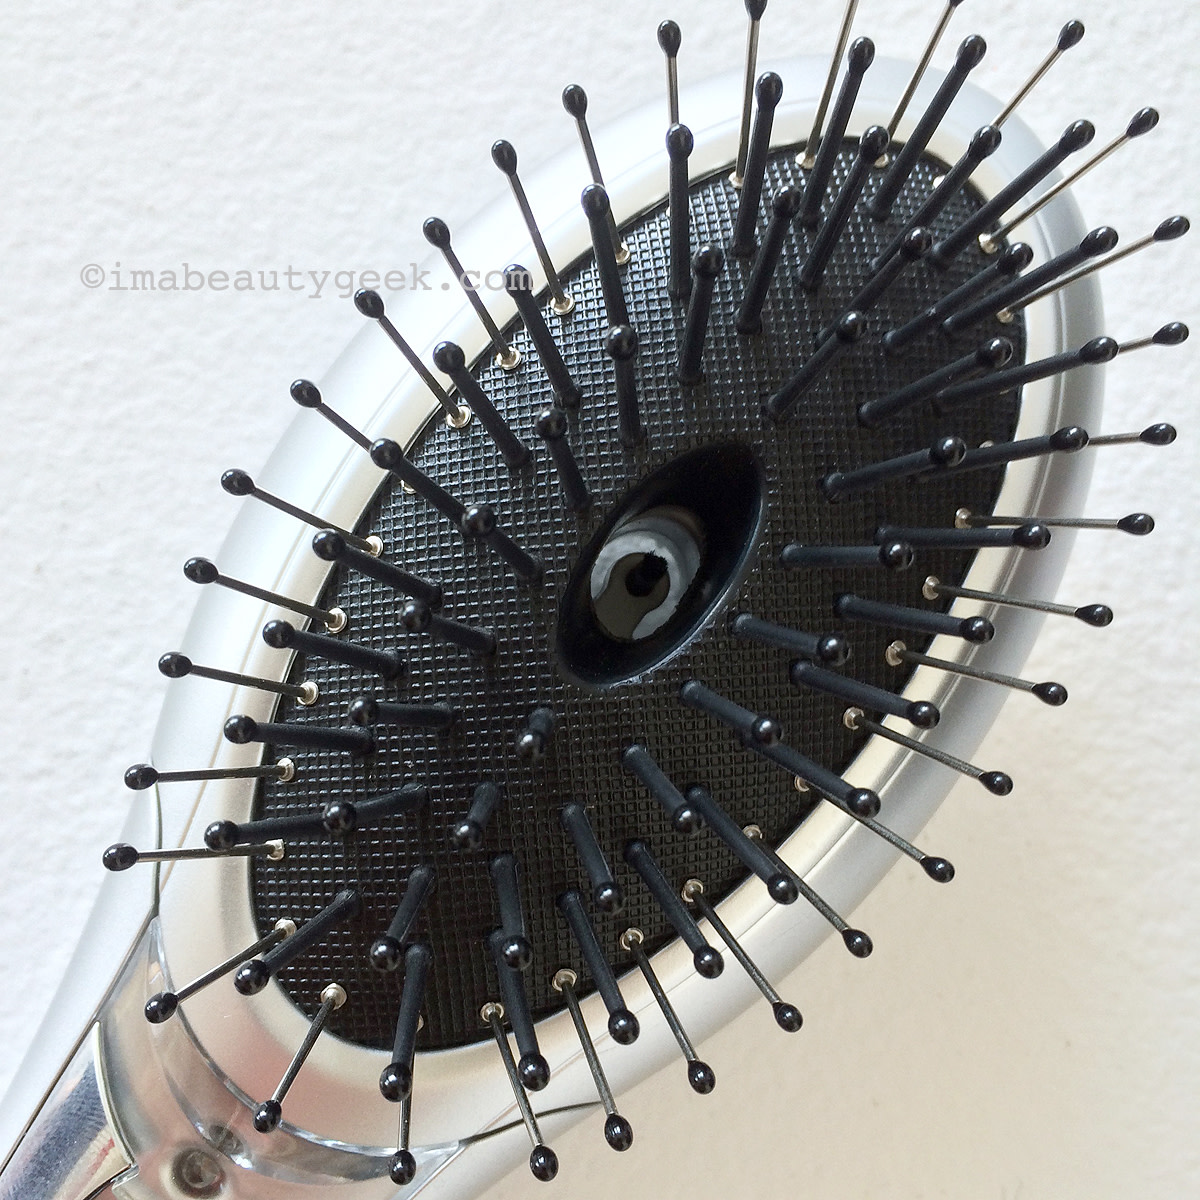 Conair: The Ultimate Brush tempers f**** and static